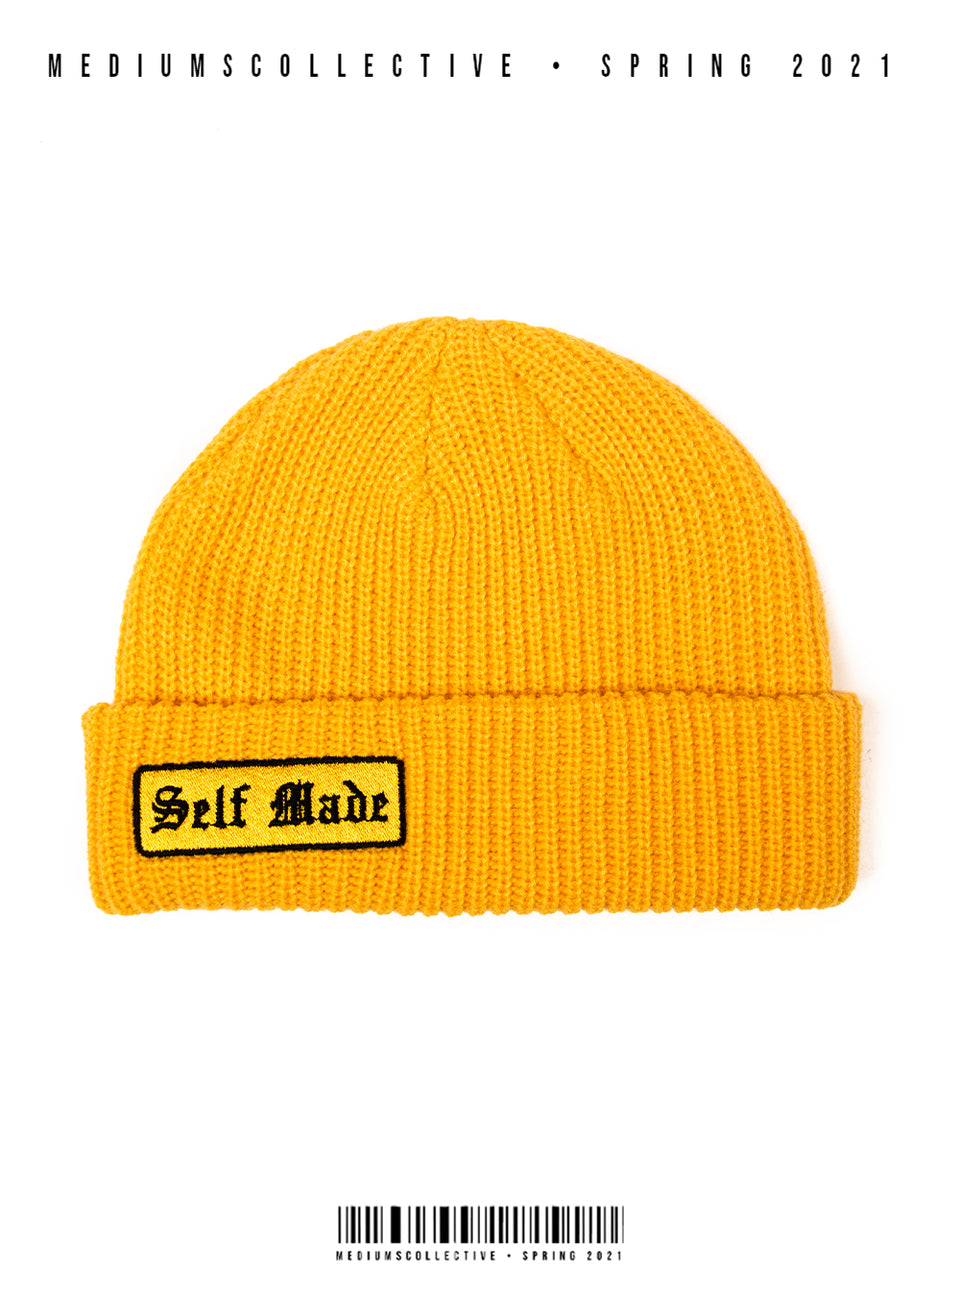 beanie, spring, gold, yellow, self made, knit beanie, streetwear, hiphop fashion, mediums, mediums collective, mediumscollective